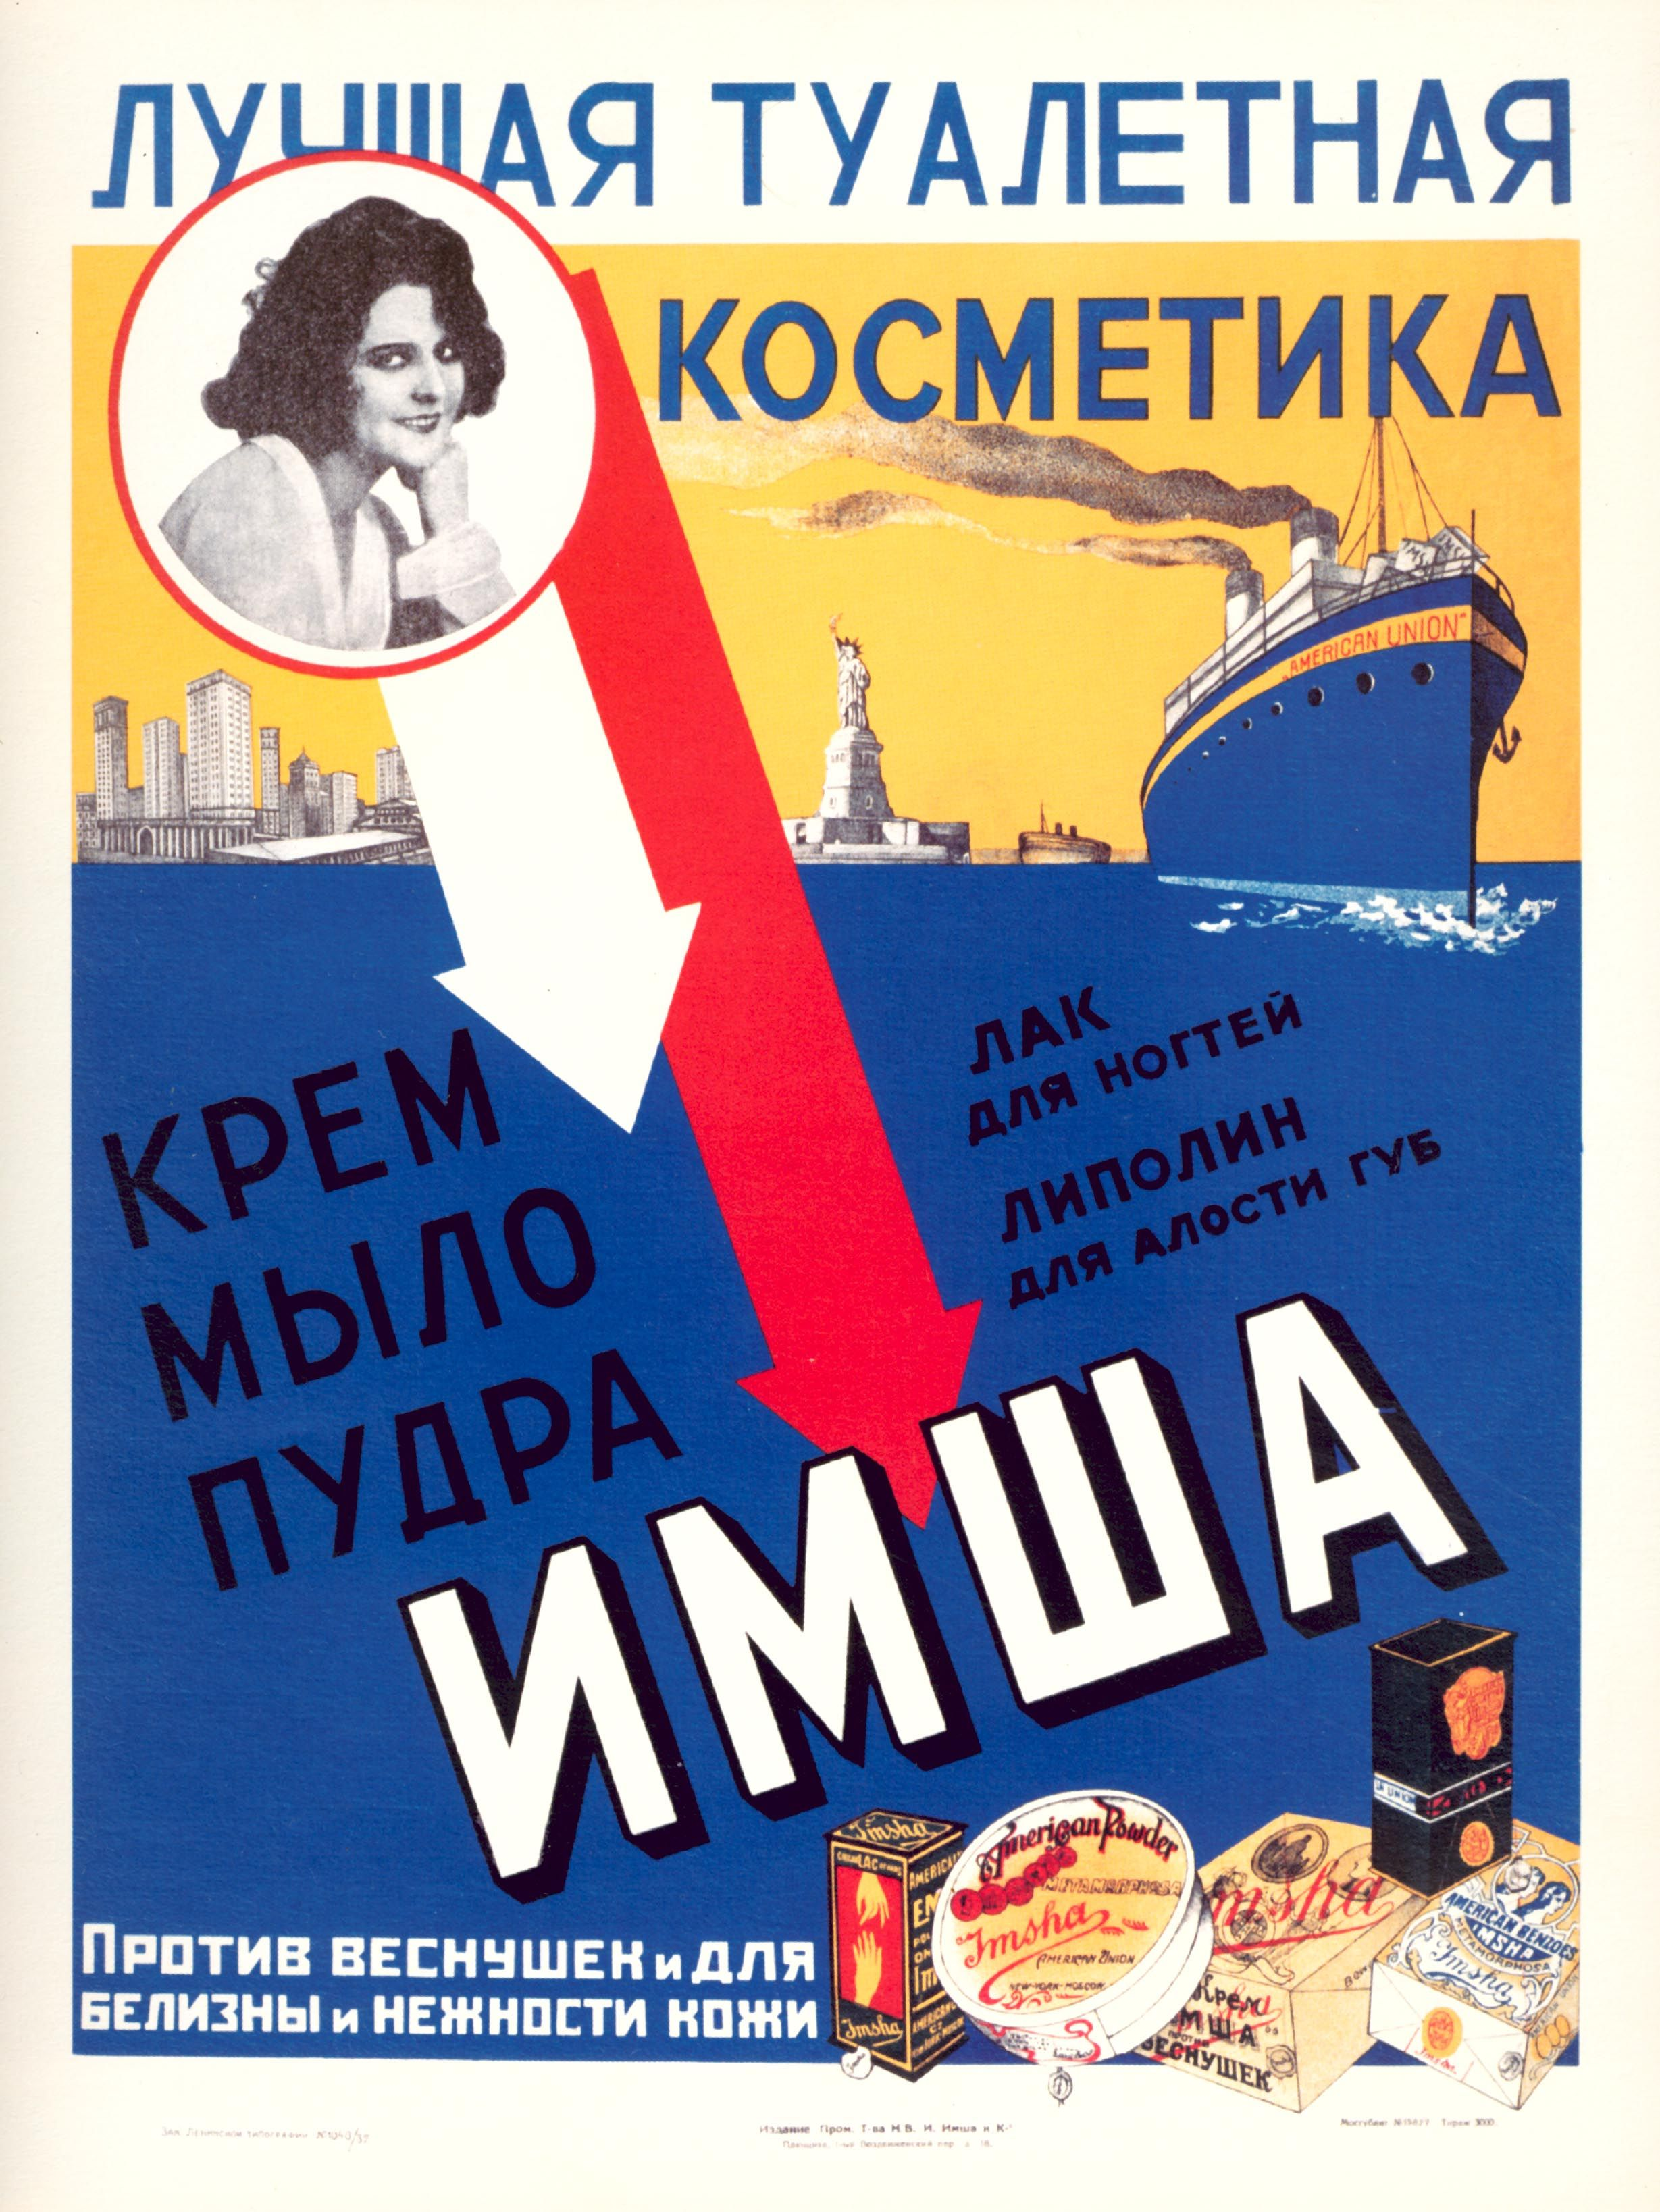 History of advertising in Russia